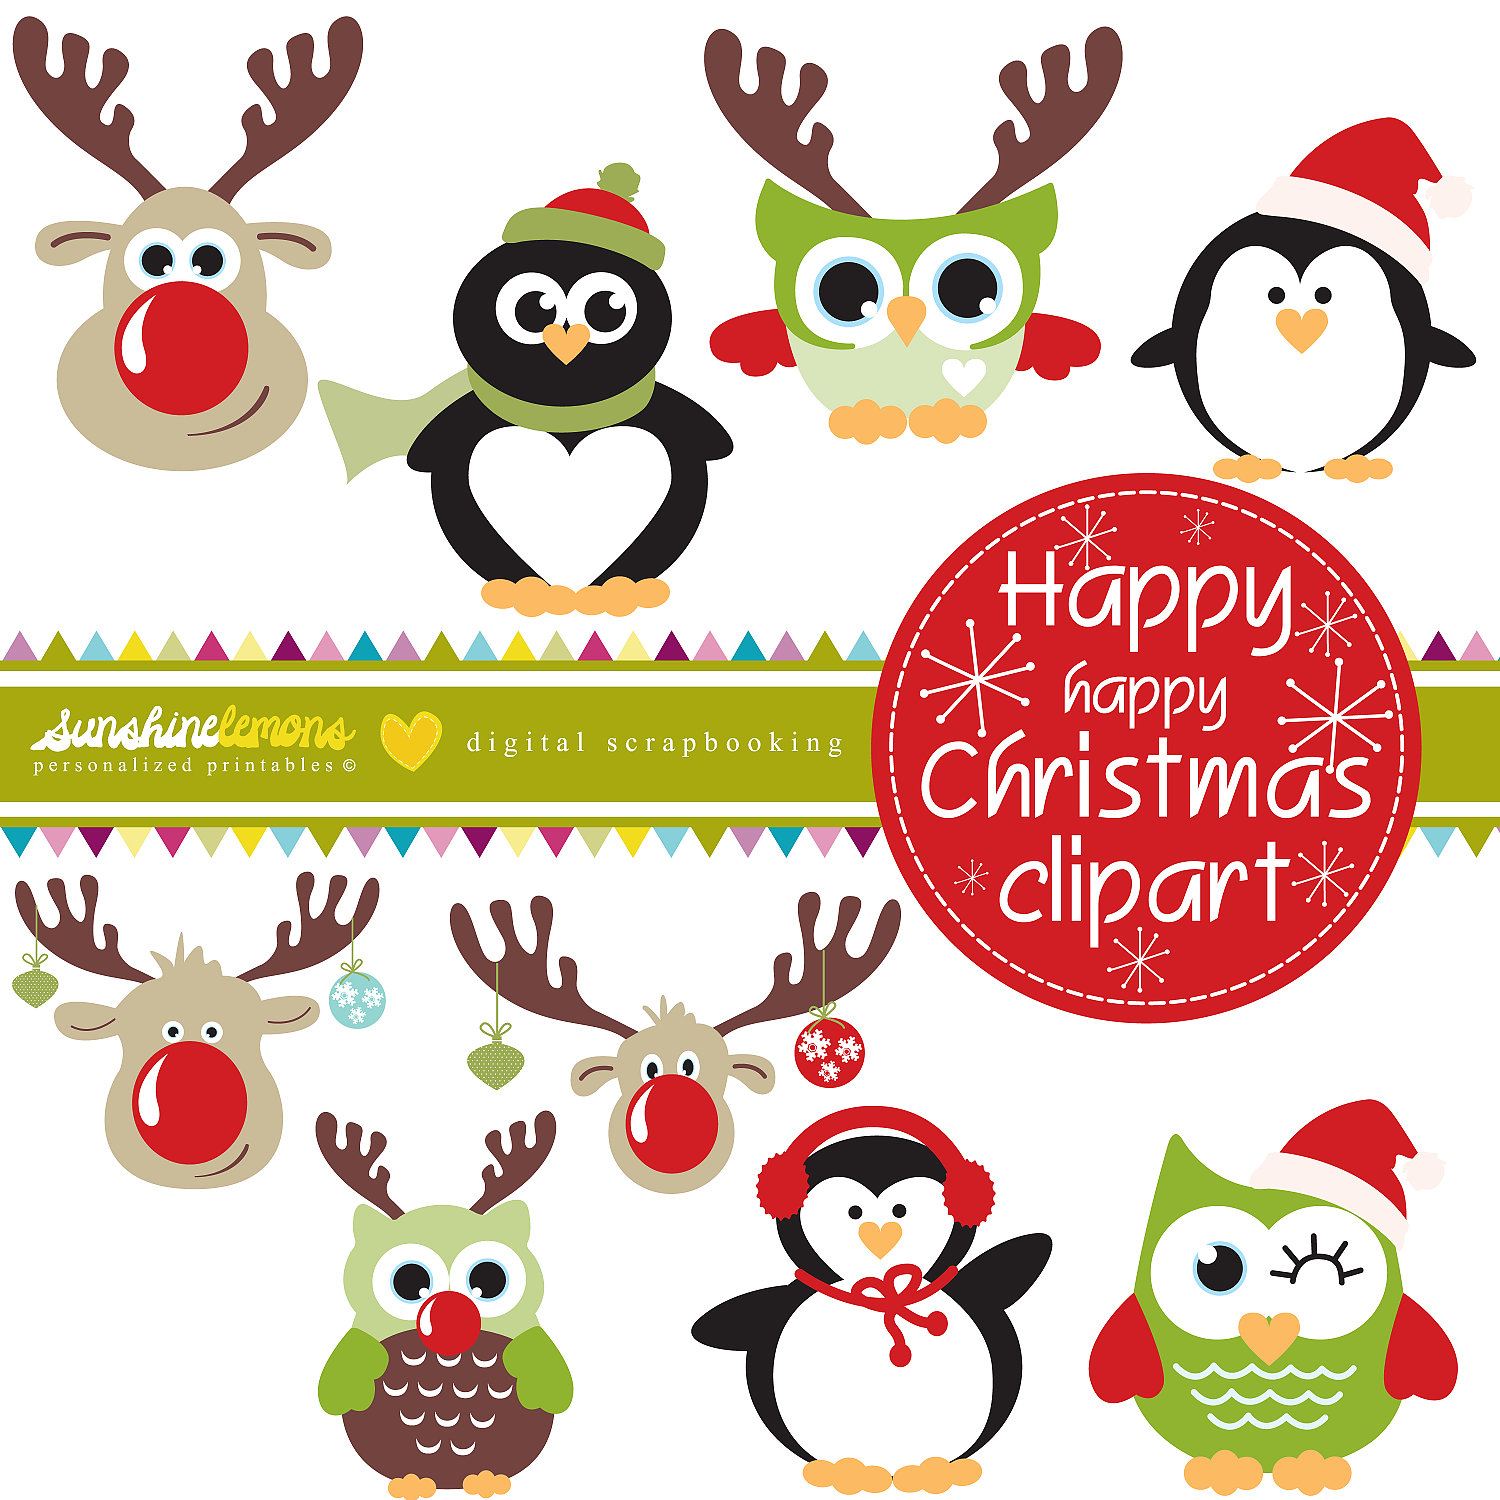 Happy Happy Christmas Clipart Christmas By SunshineLemons.